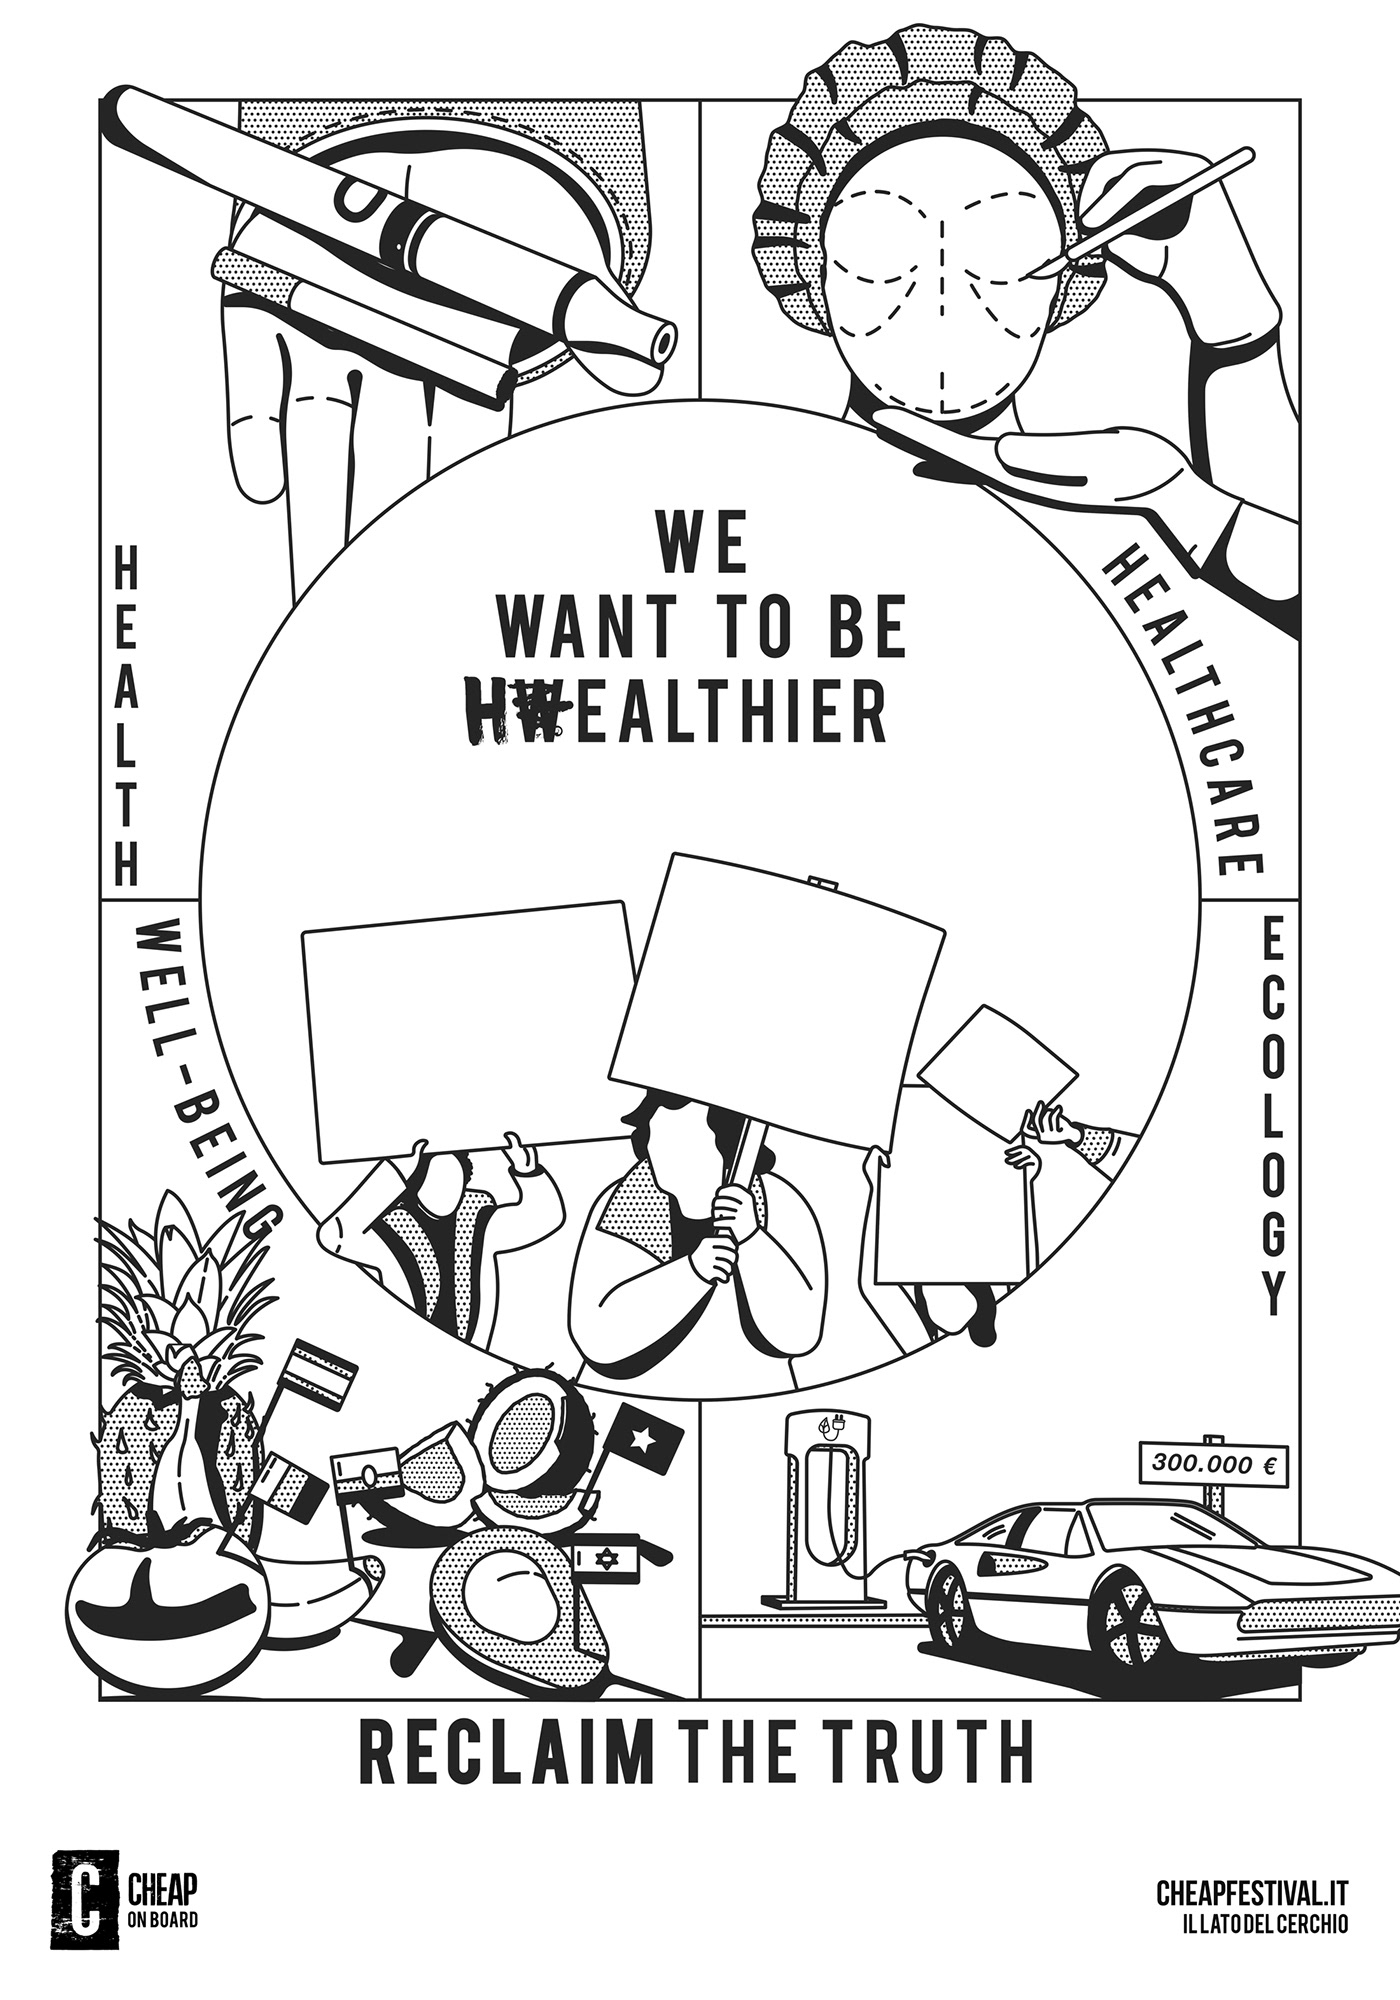 bologna,Cheap,climate,Ecology,Education,Health,poster,Reclaim,truth,wealth